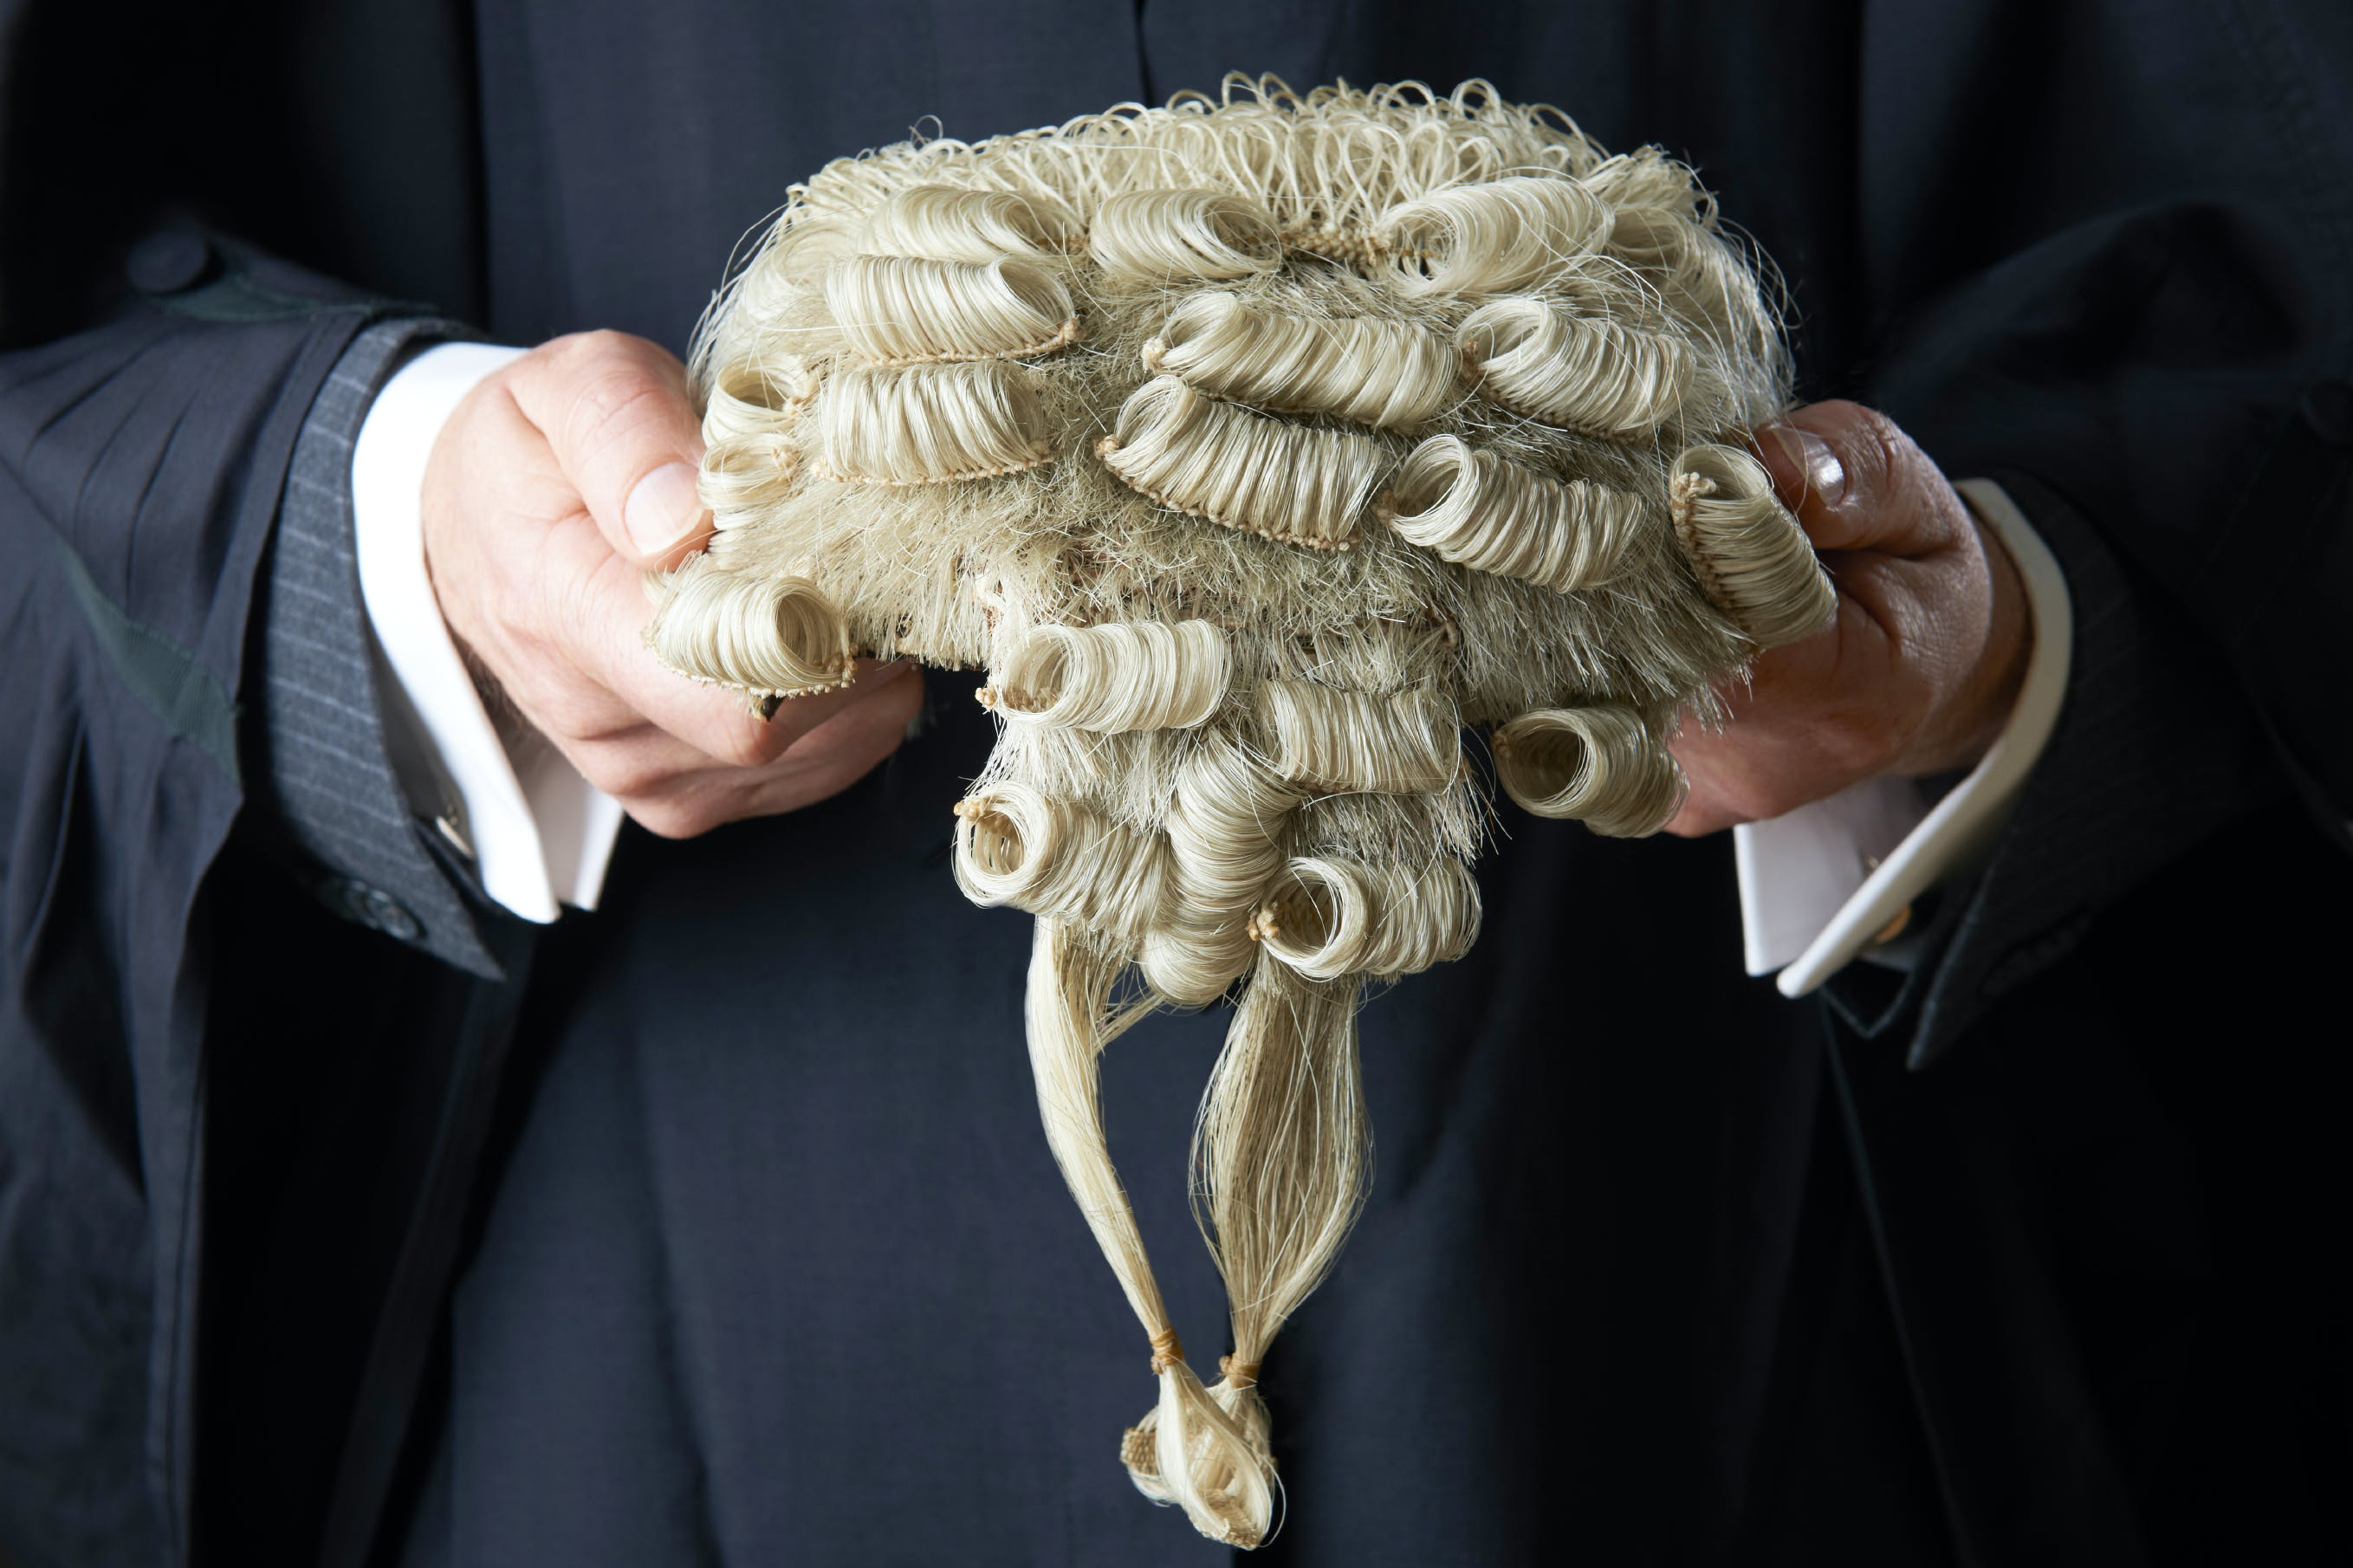 barrister holds a wig, illustrates the successful QC appointments